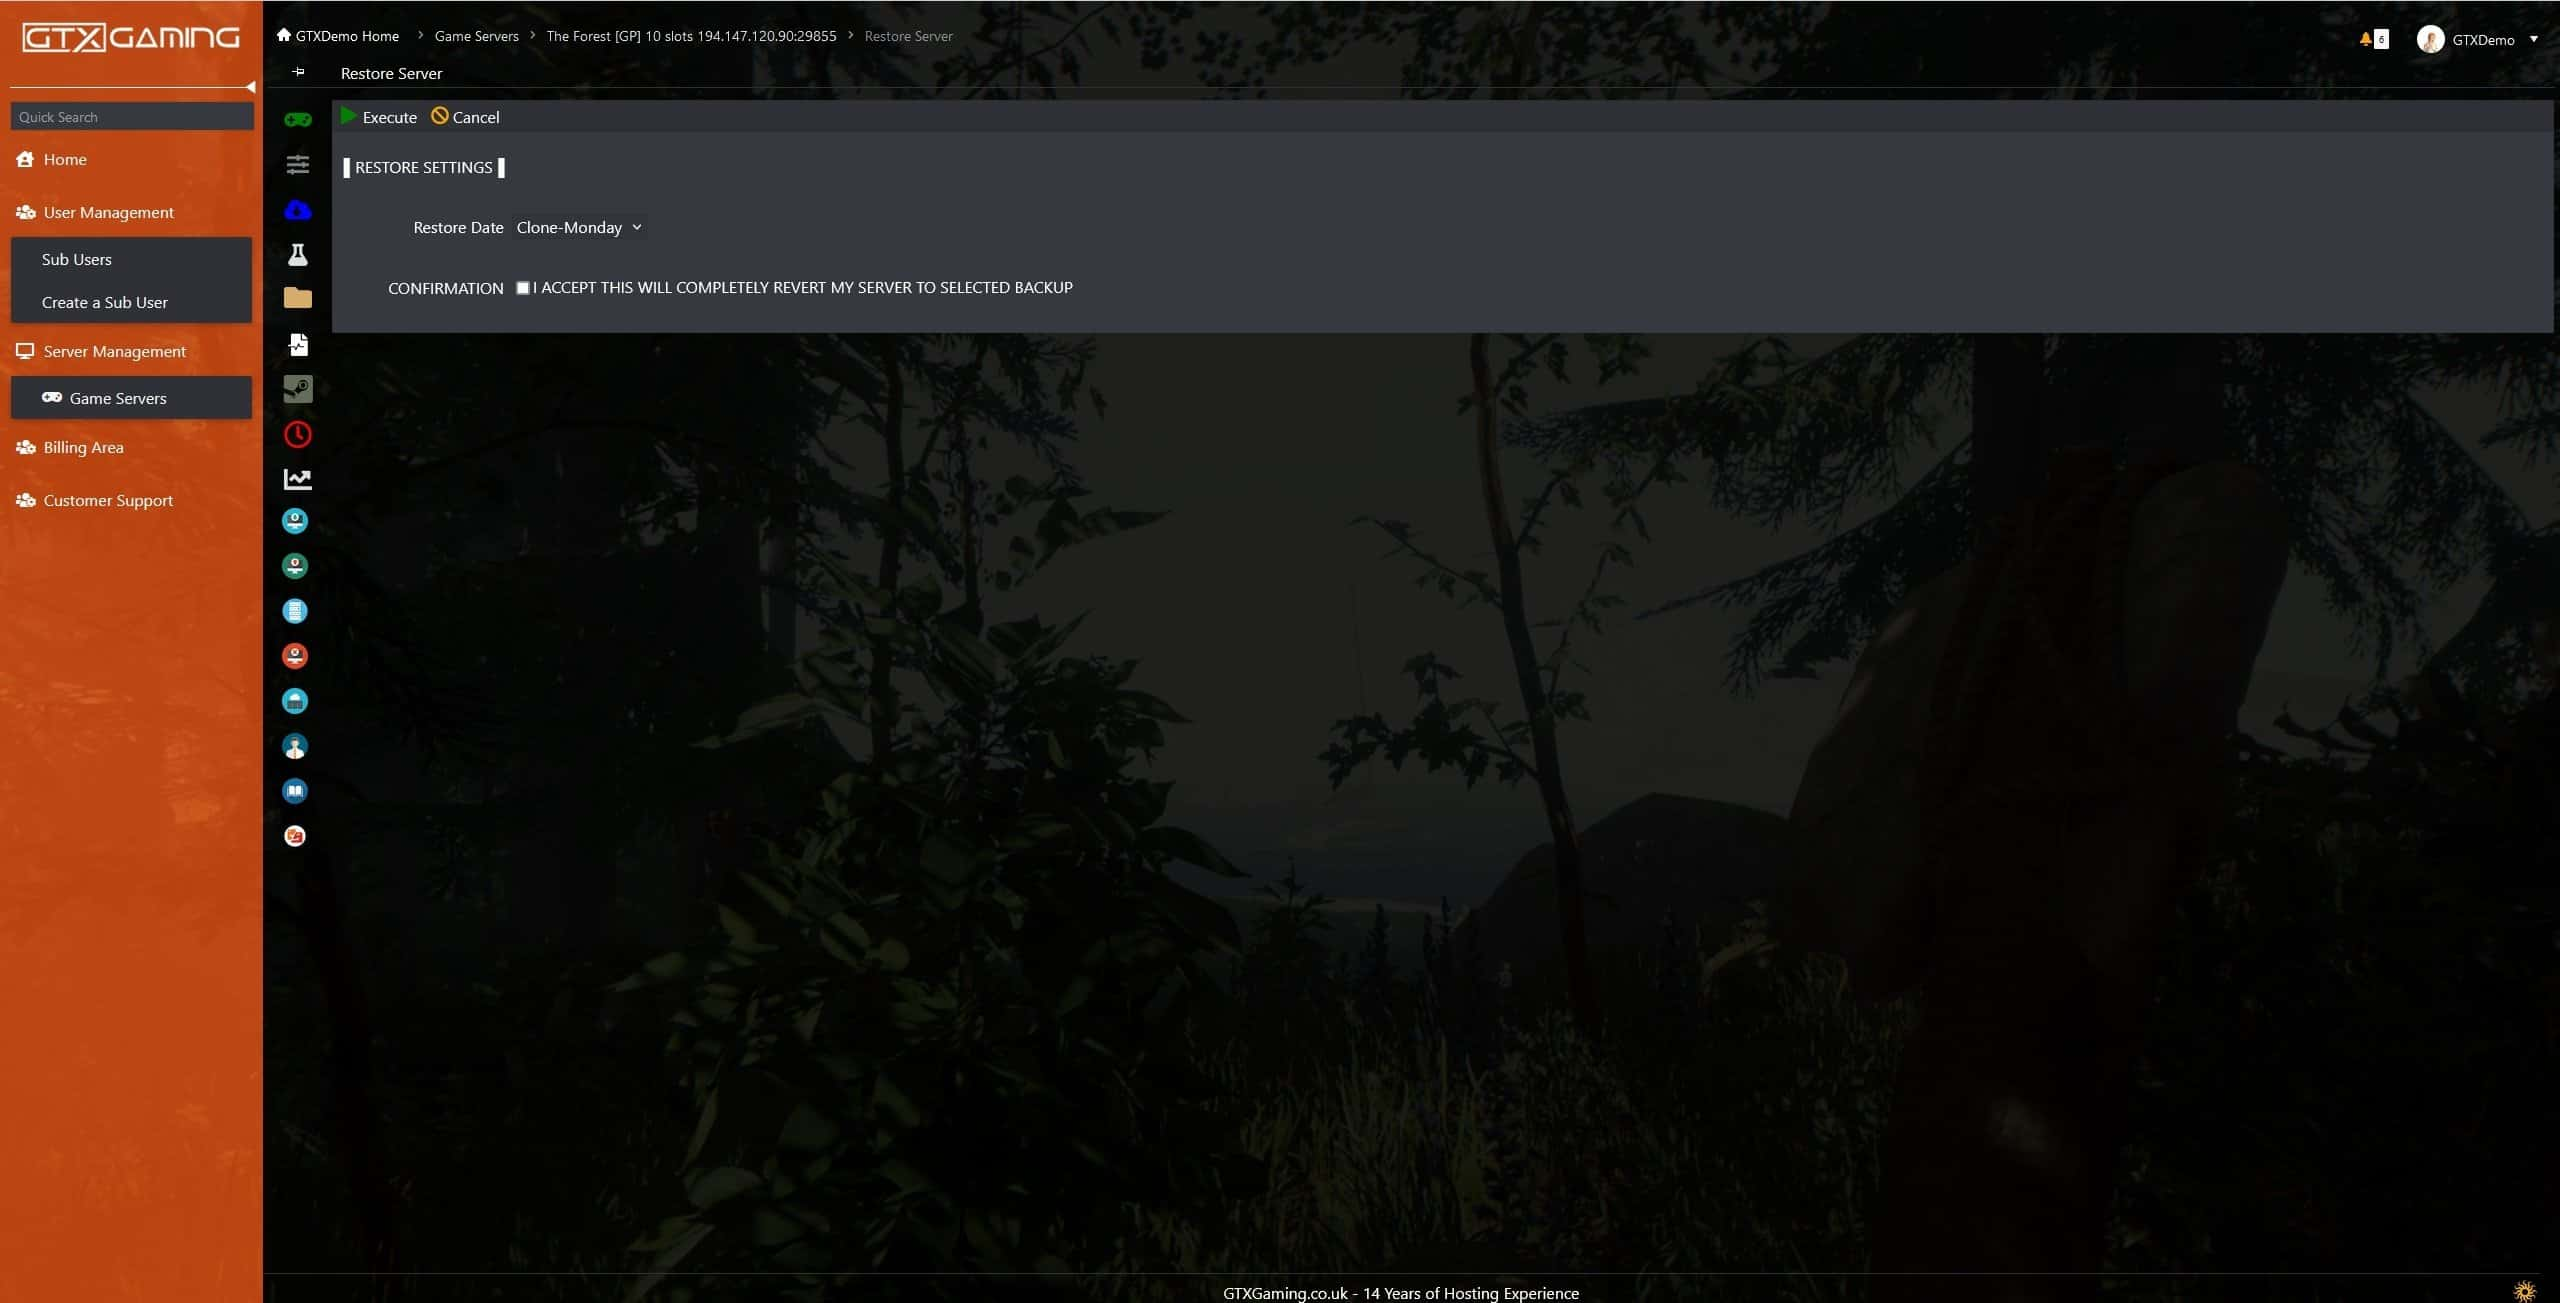 gtx-gaming-gamepanel-9-the-forest